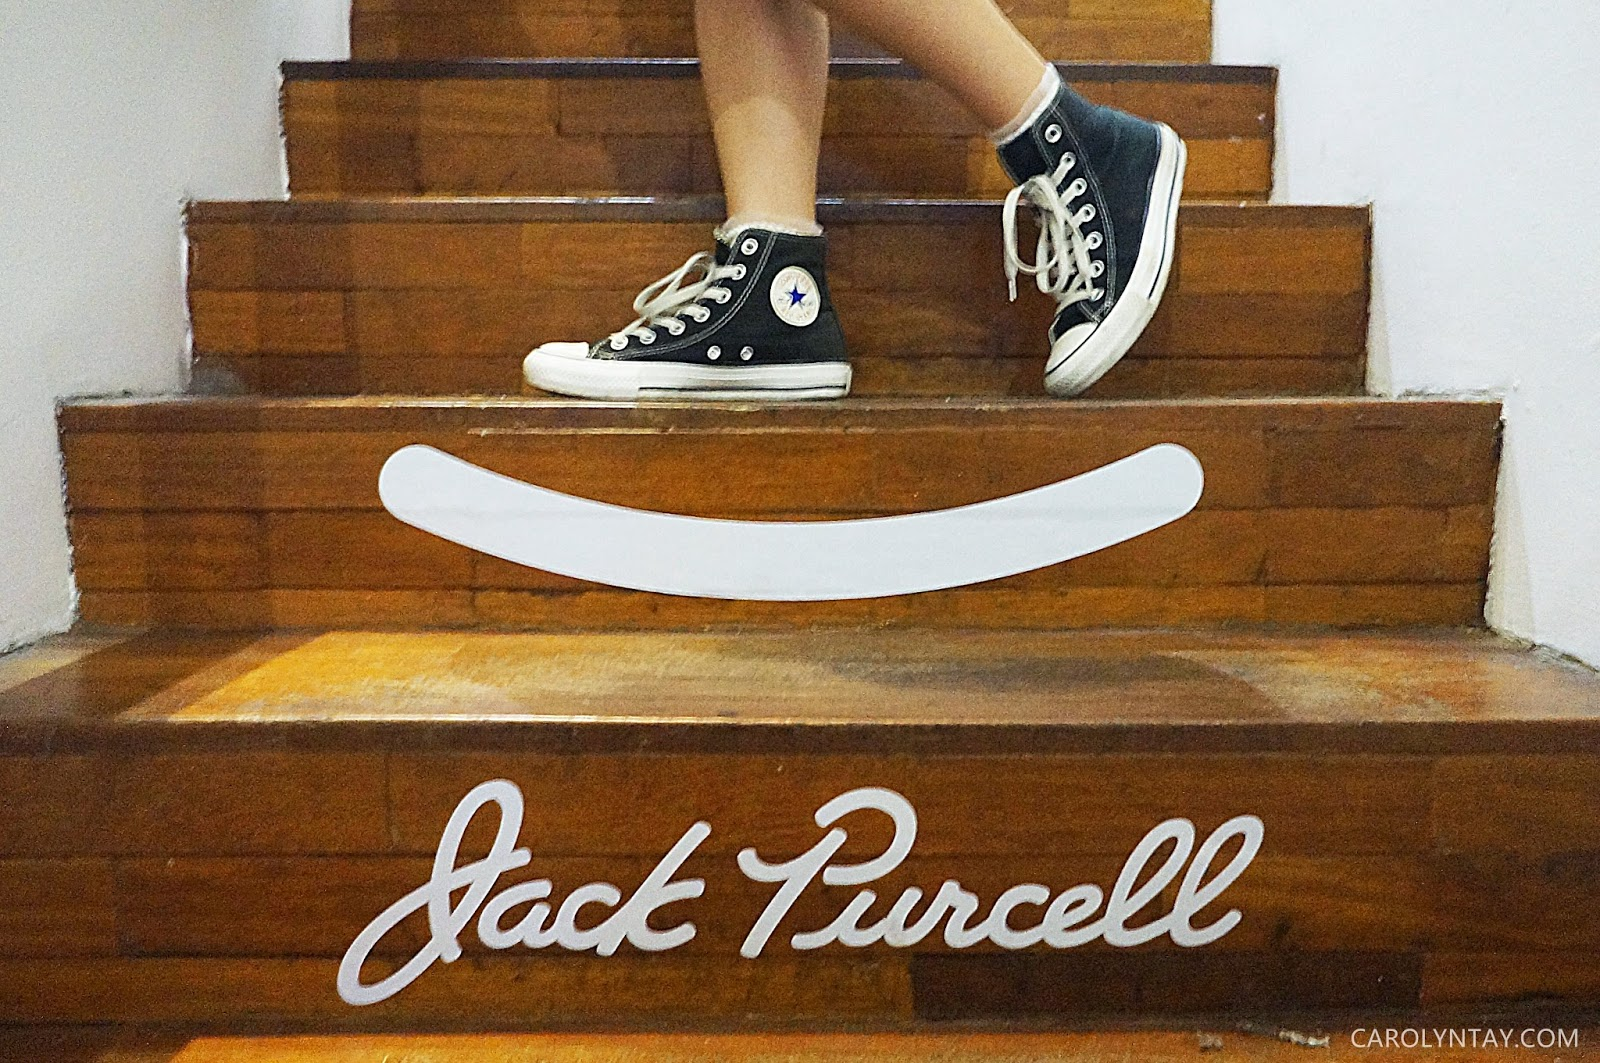 317246565e5550 Converse Jack Purcell x The Offday Pop Up Store